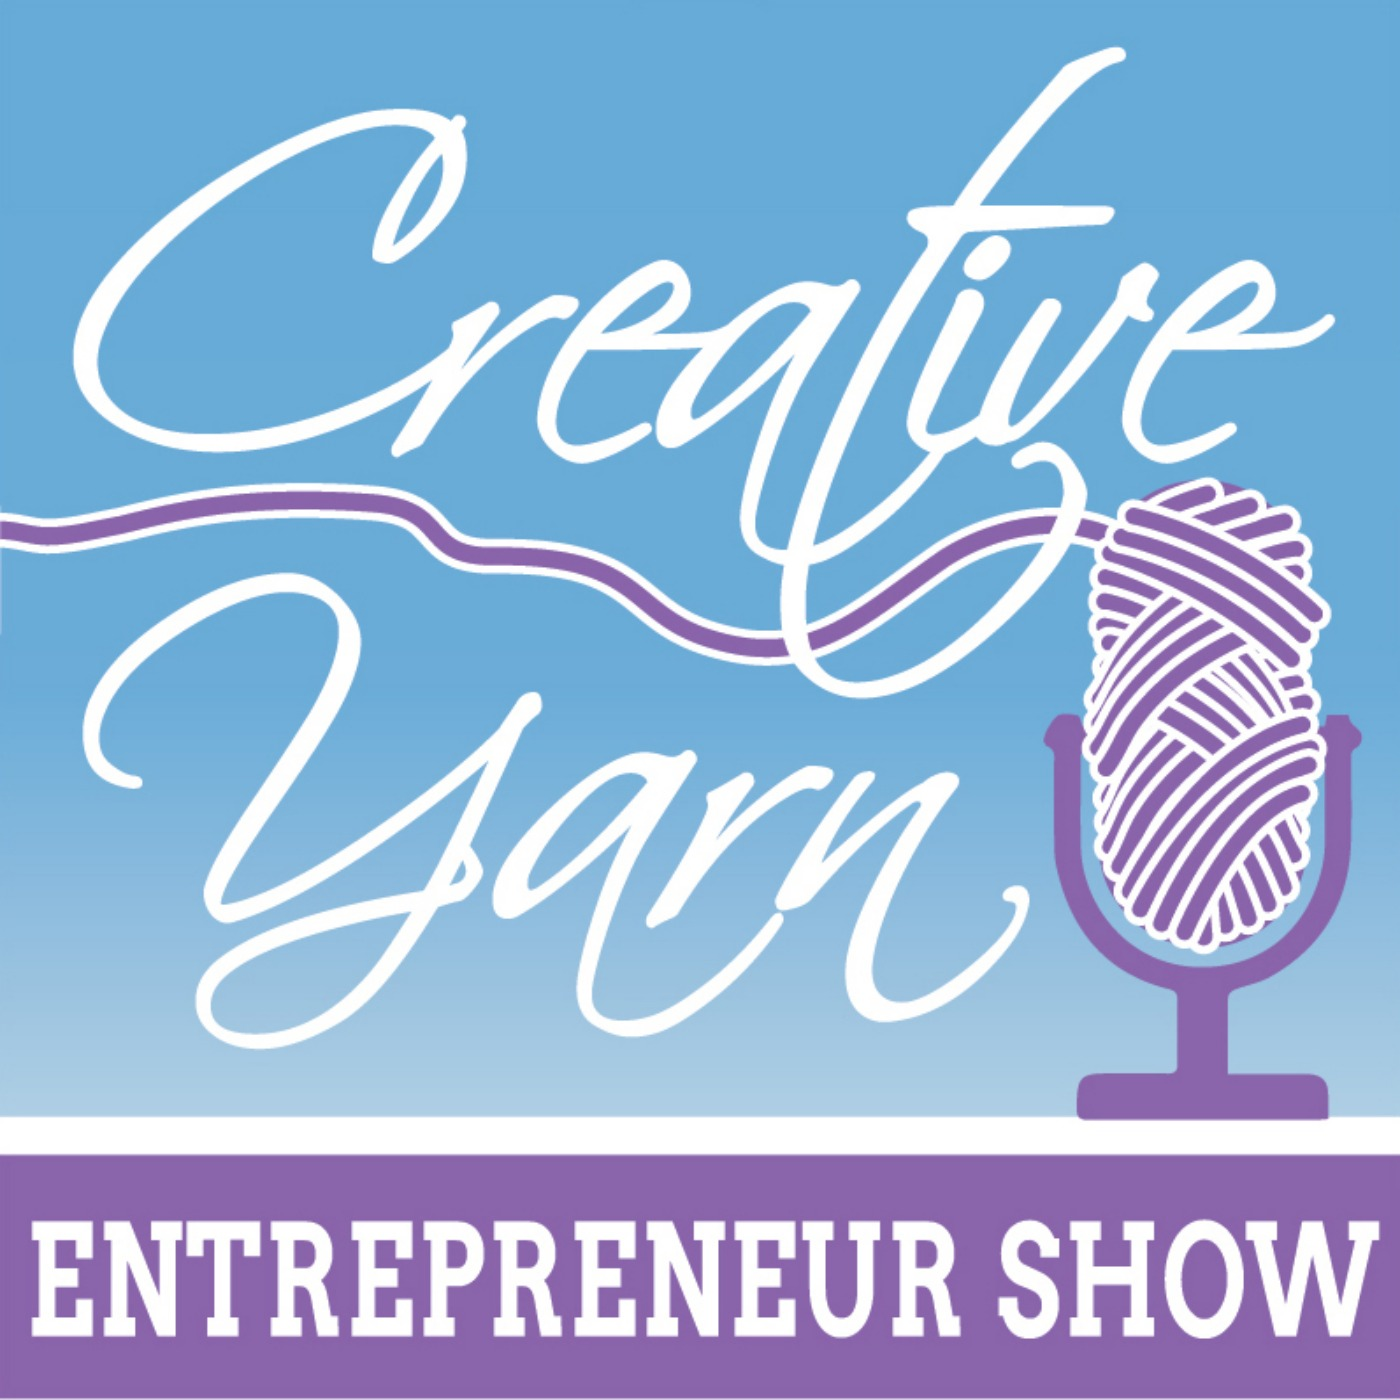 Episode 44: Getting The Most Out of Ravelry For Your Yarn-Related Business - The Creative Yarn Entrepreneur Show